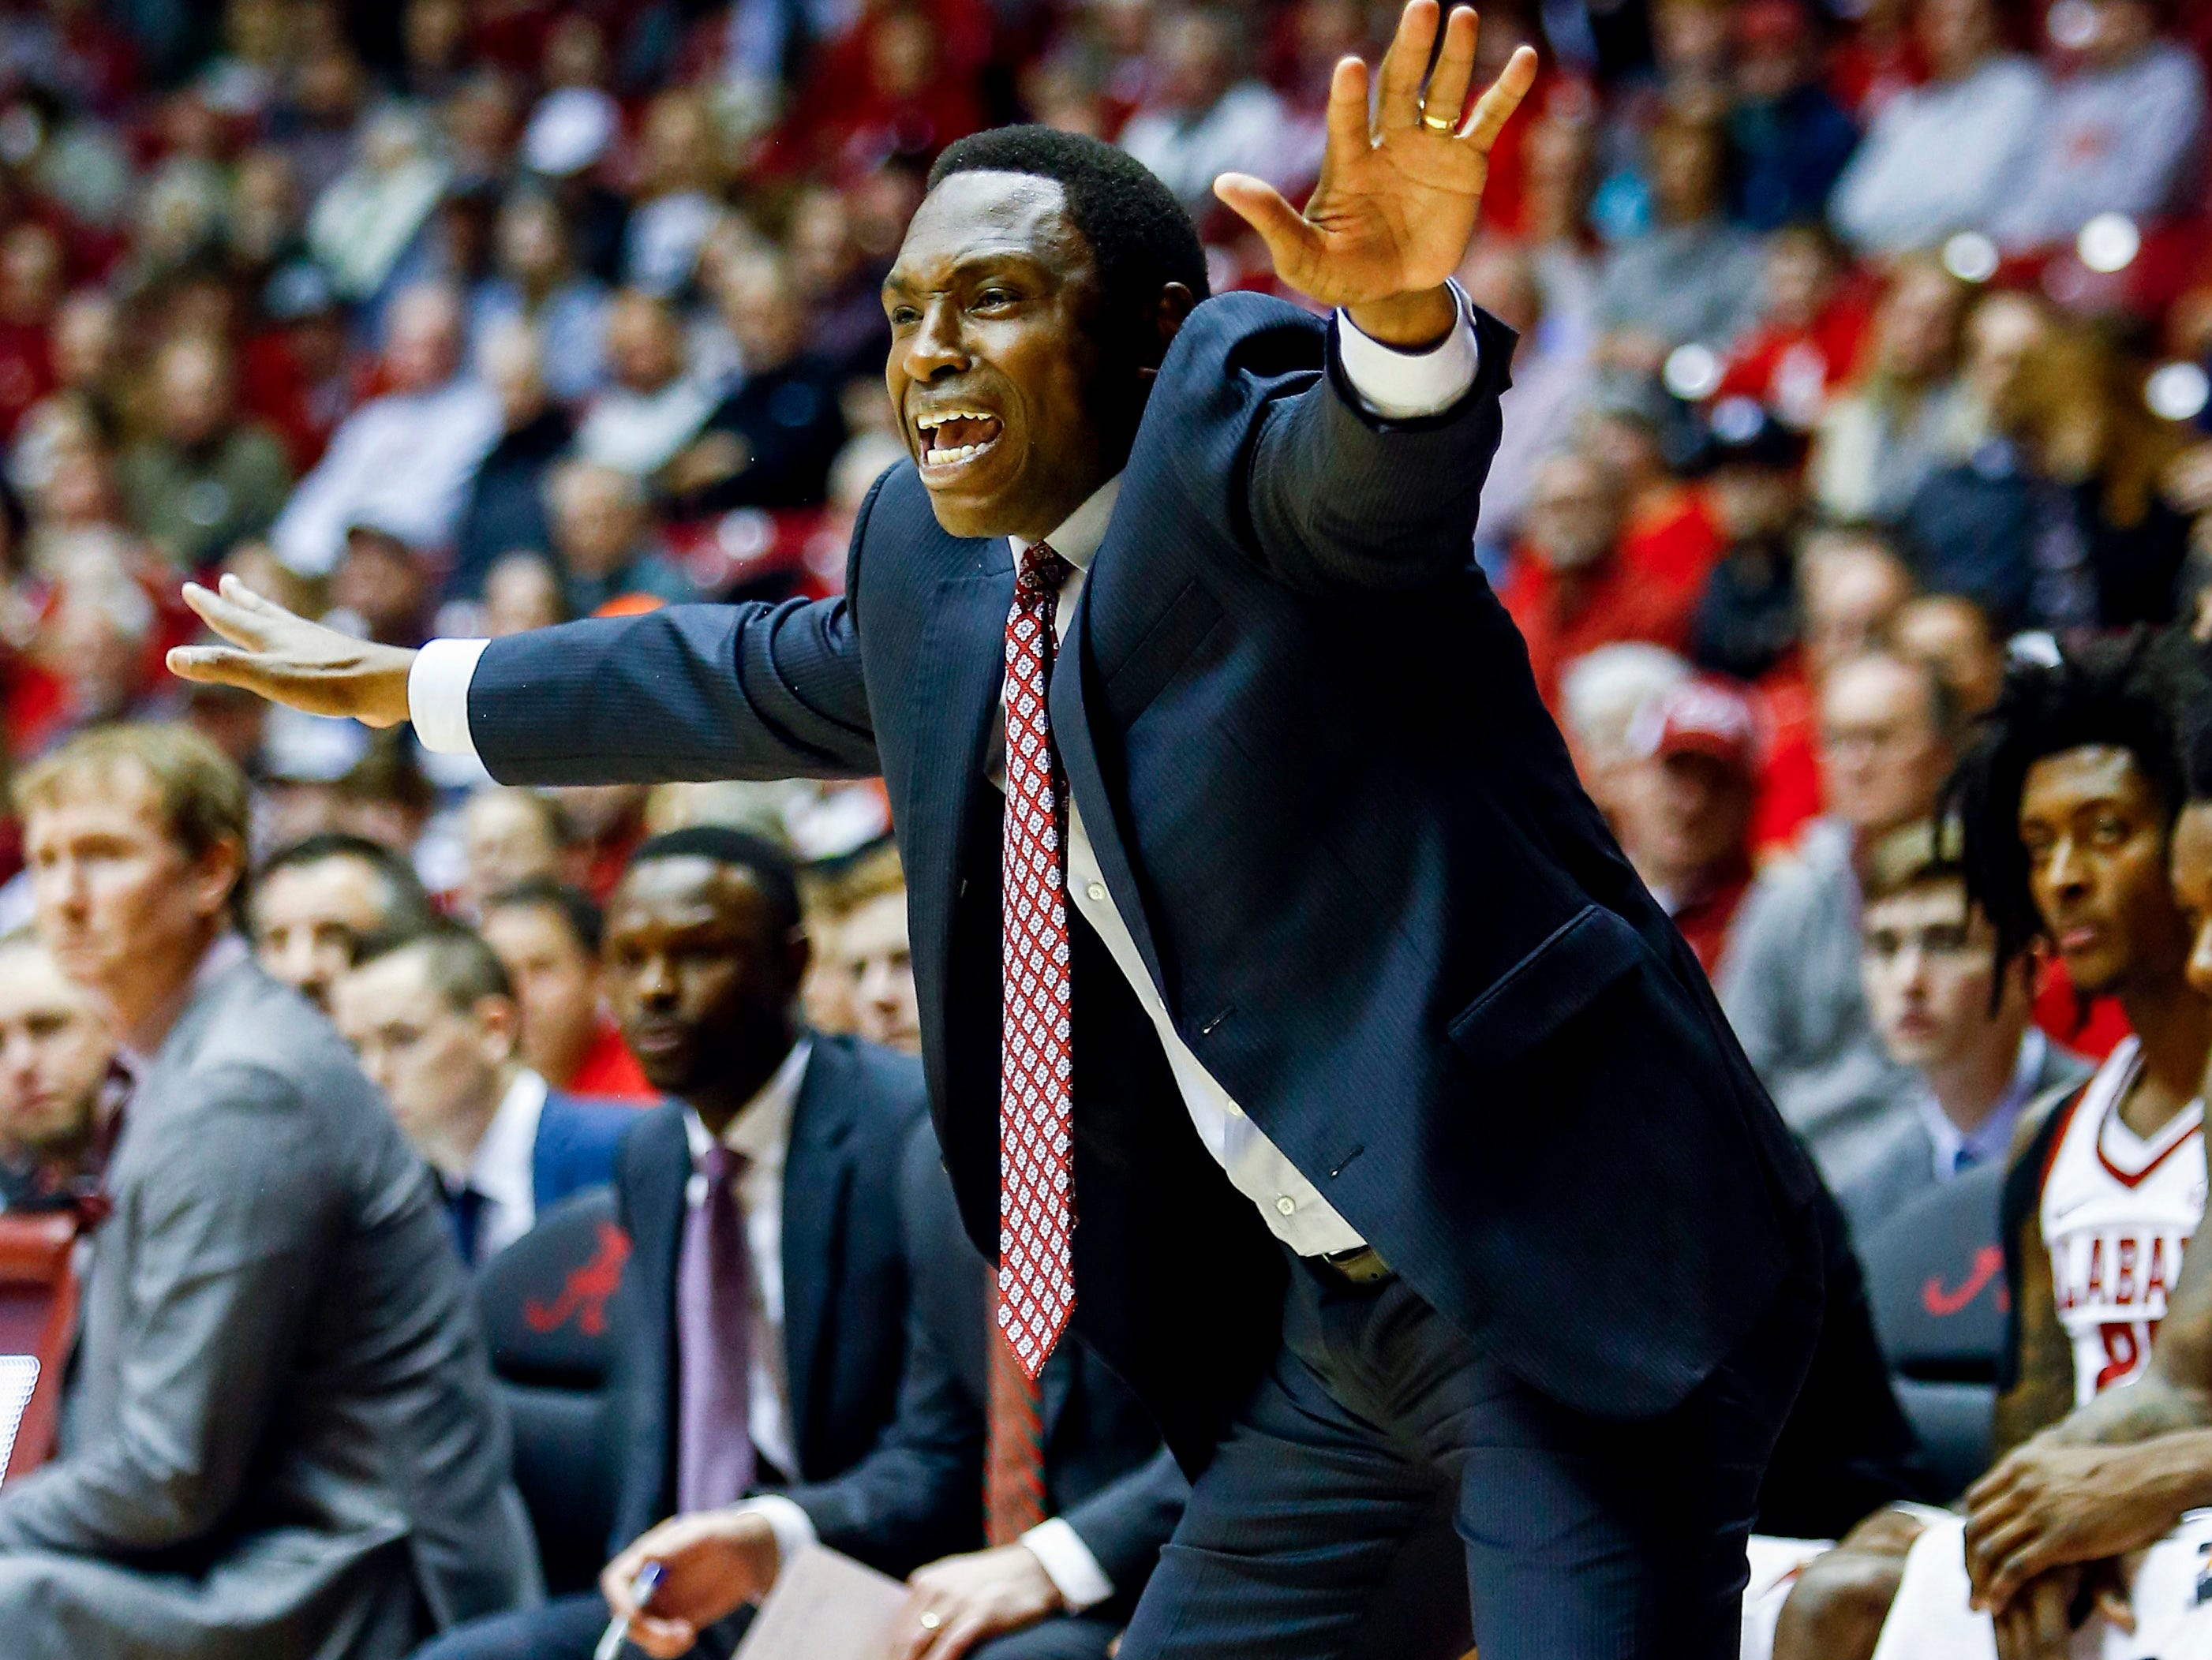 Dec 21, 2018; Tuscaloosa, AL, USA; Alabama Crimson Tide head coach Avery Johnson calls out to players during the first half of an NCAA college basketball game against the Penn State Nittany Lions at Coleman Coliseum. Mandatory Credit: Butch Dill-USA TODAY Sports